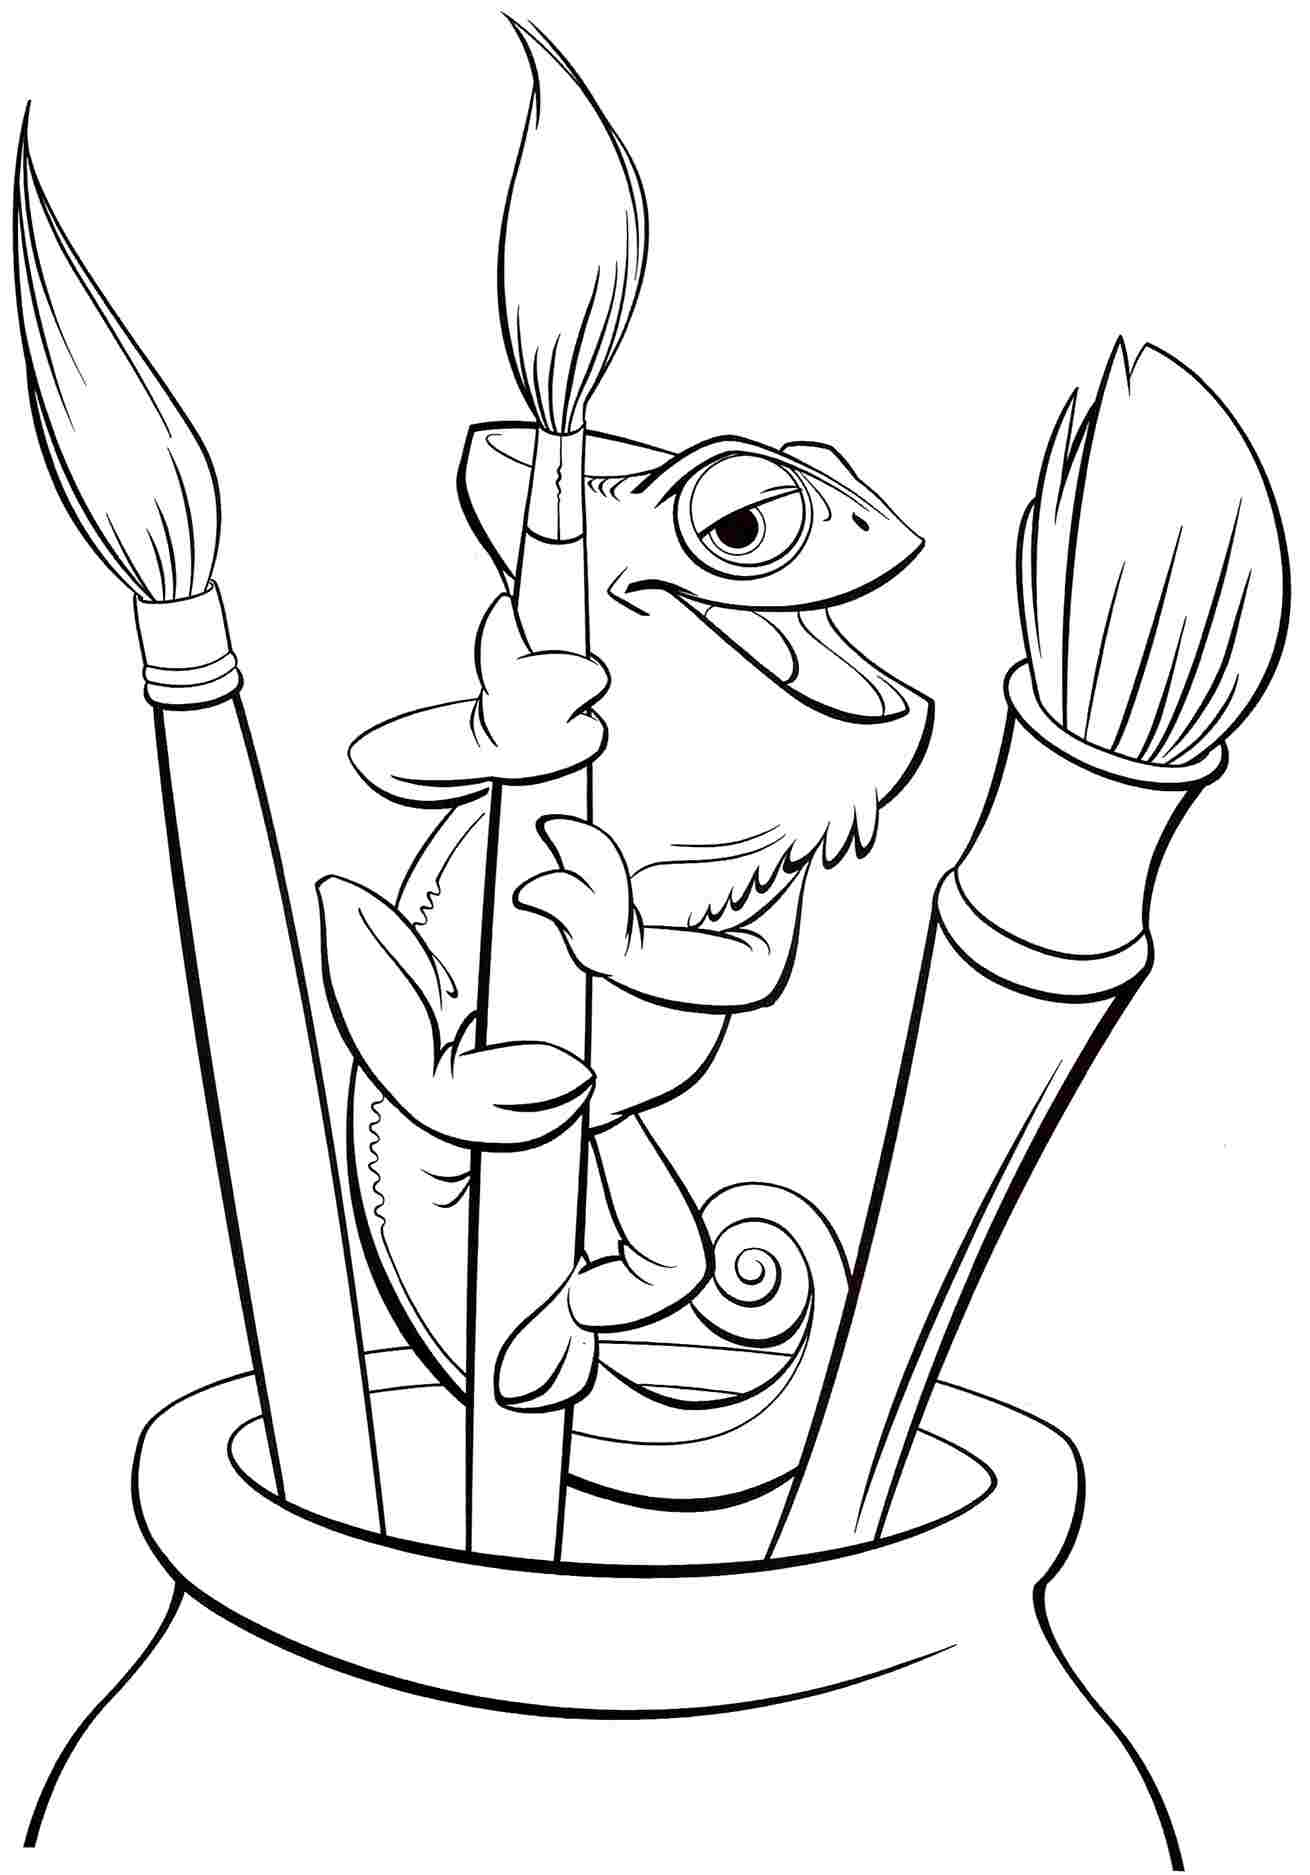 Rapunzel Tangled Coloring Pages at GetDrawings | Free download